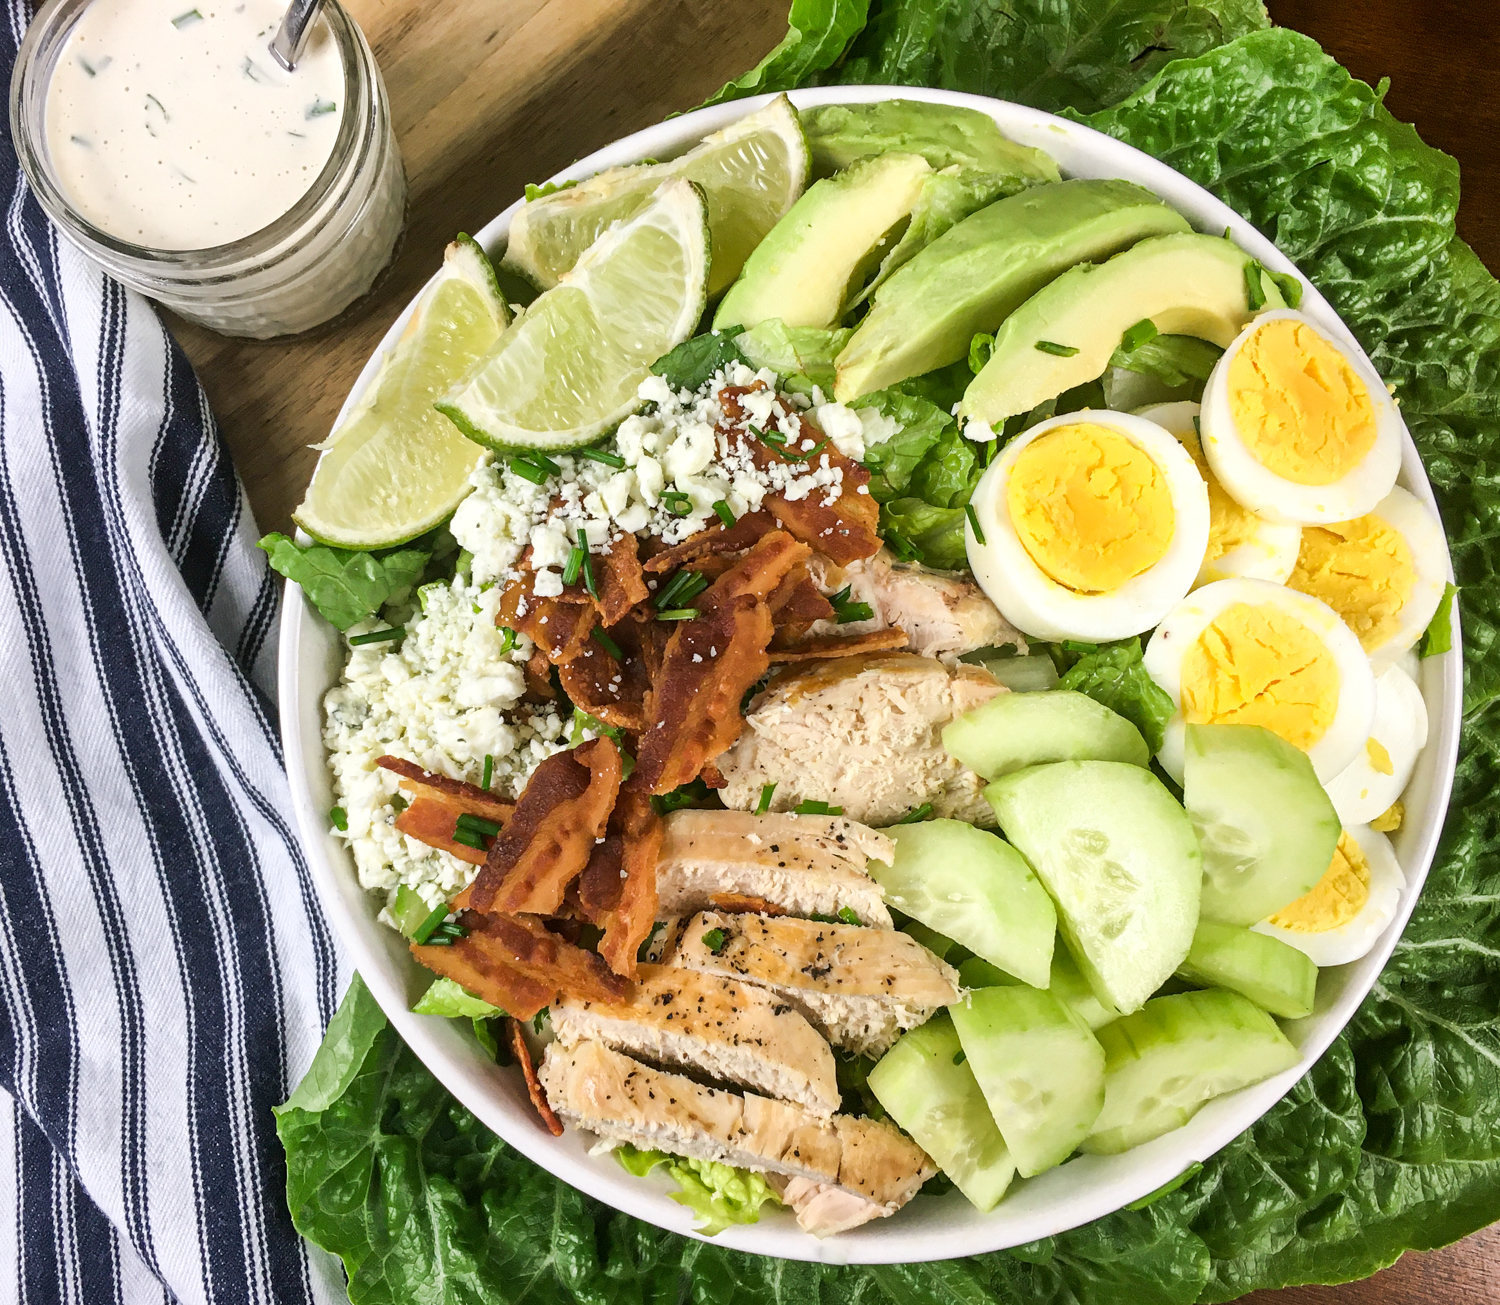 KETO COBB SALAD WITH HOMEMADE RANCH DRESSING